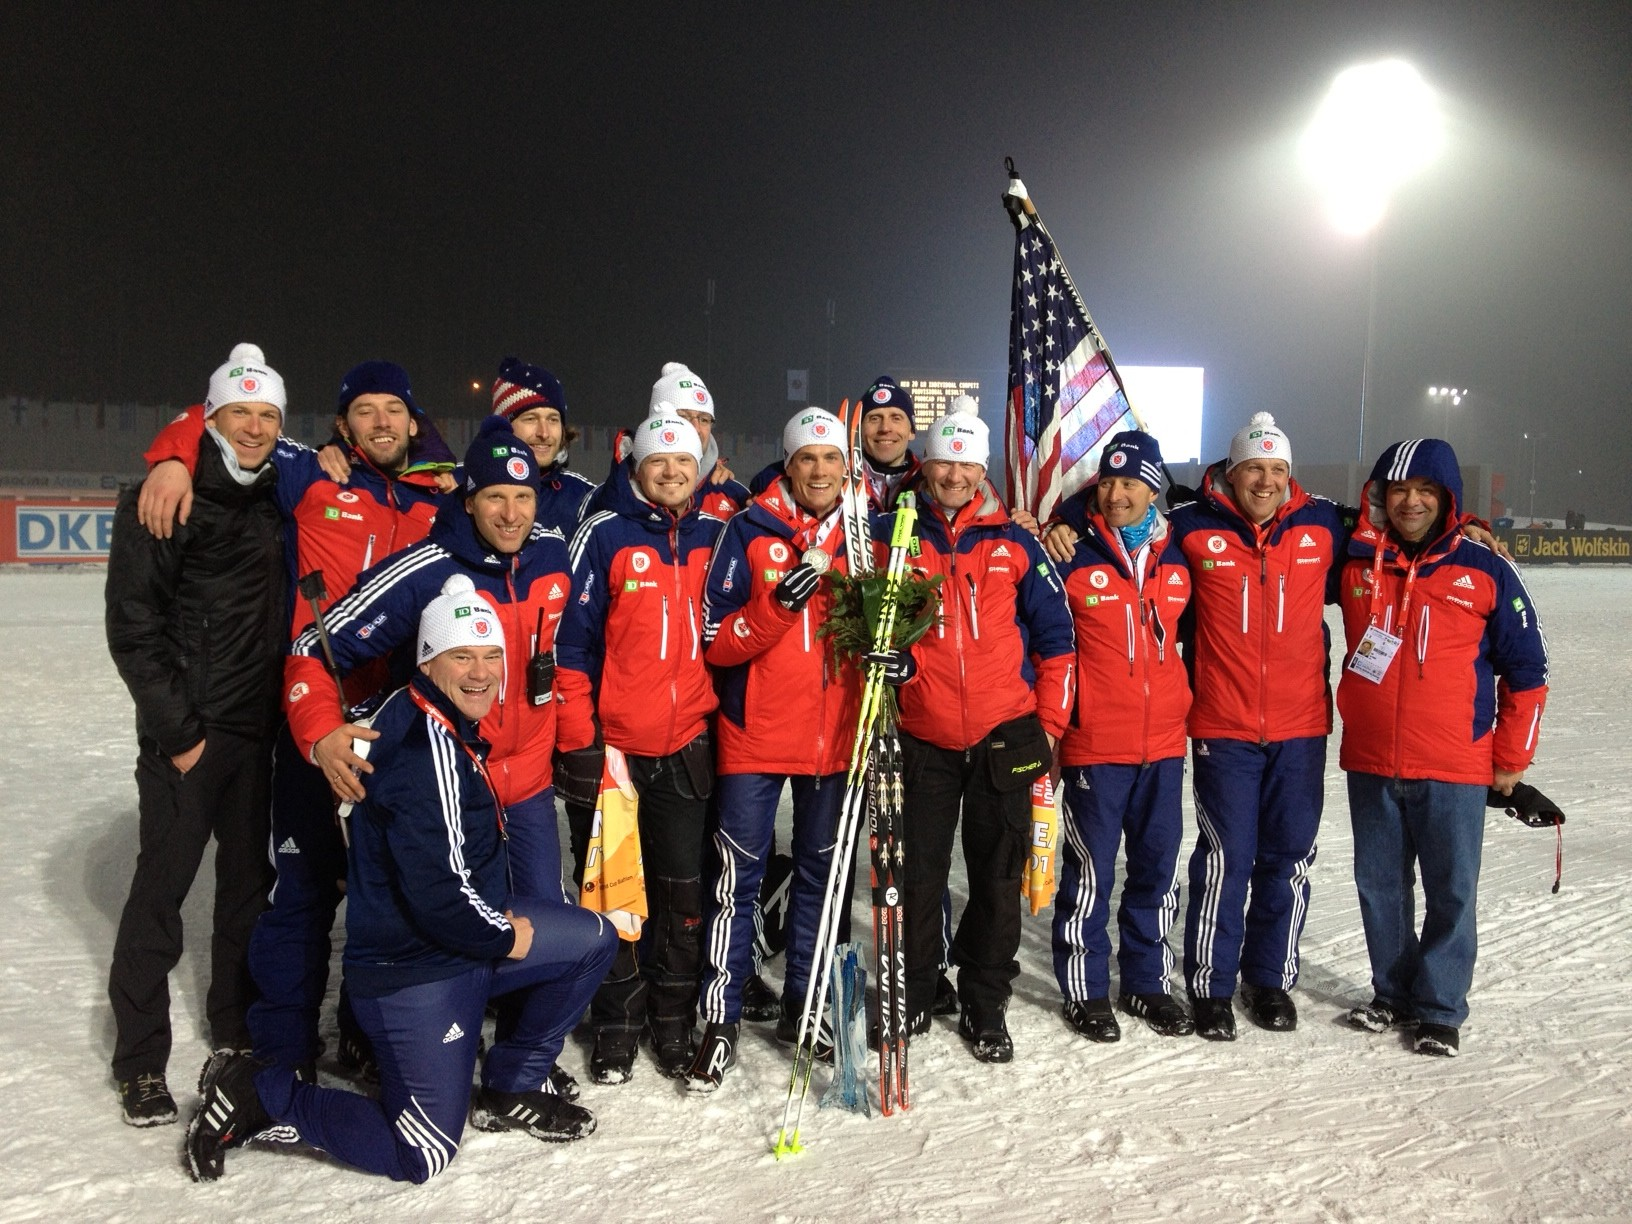 The U.S. men's biathlon team celebrates Tim Burke's silver // photo courtesy Nordic Focus and U.S. Biathlon